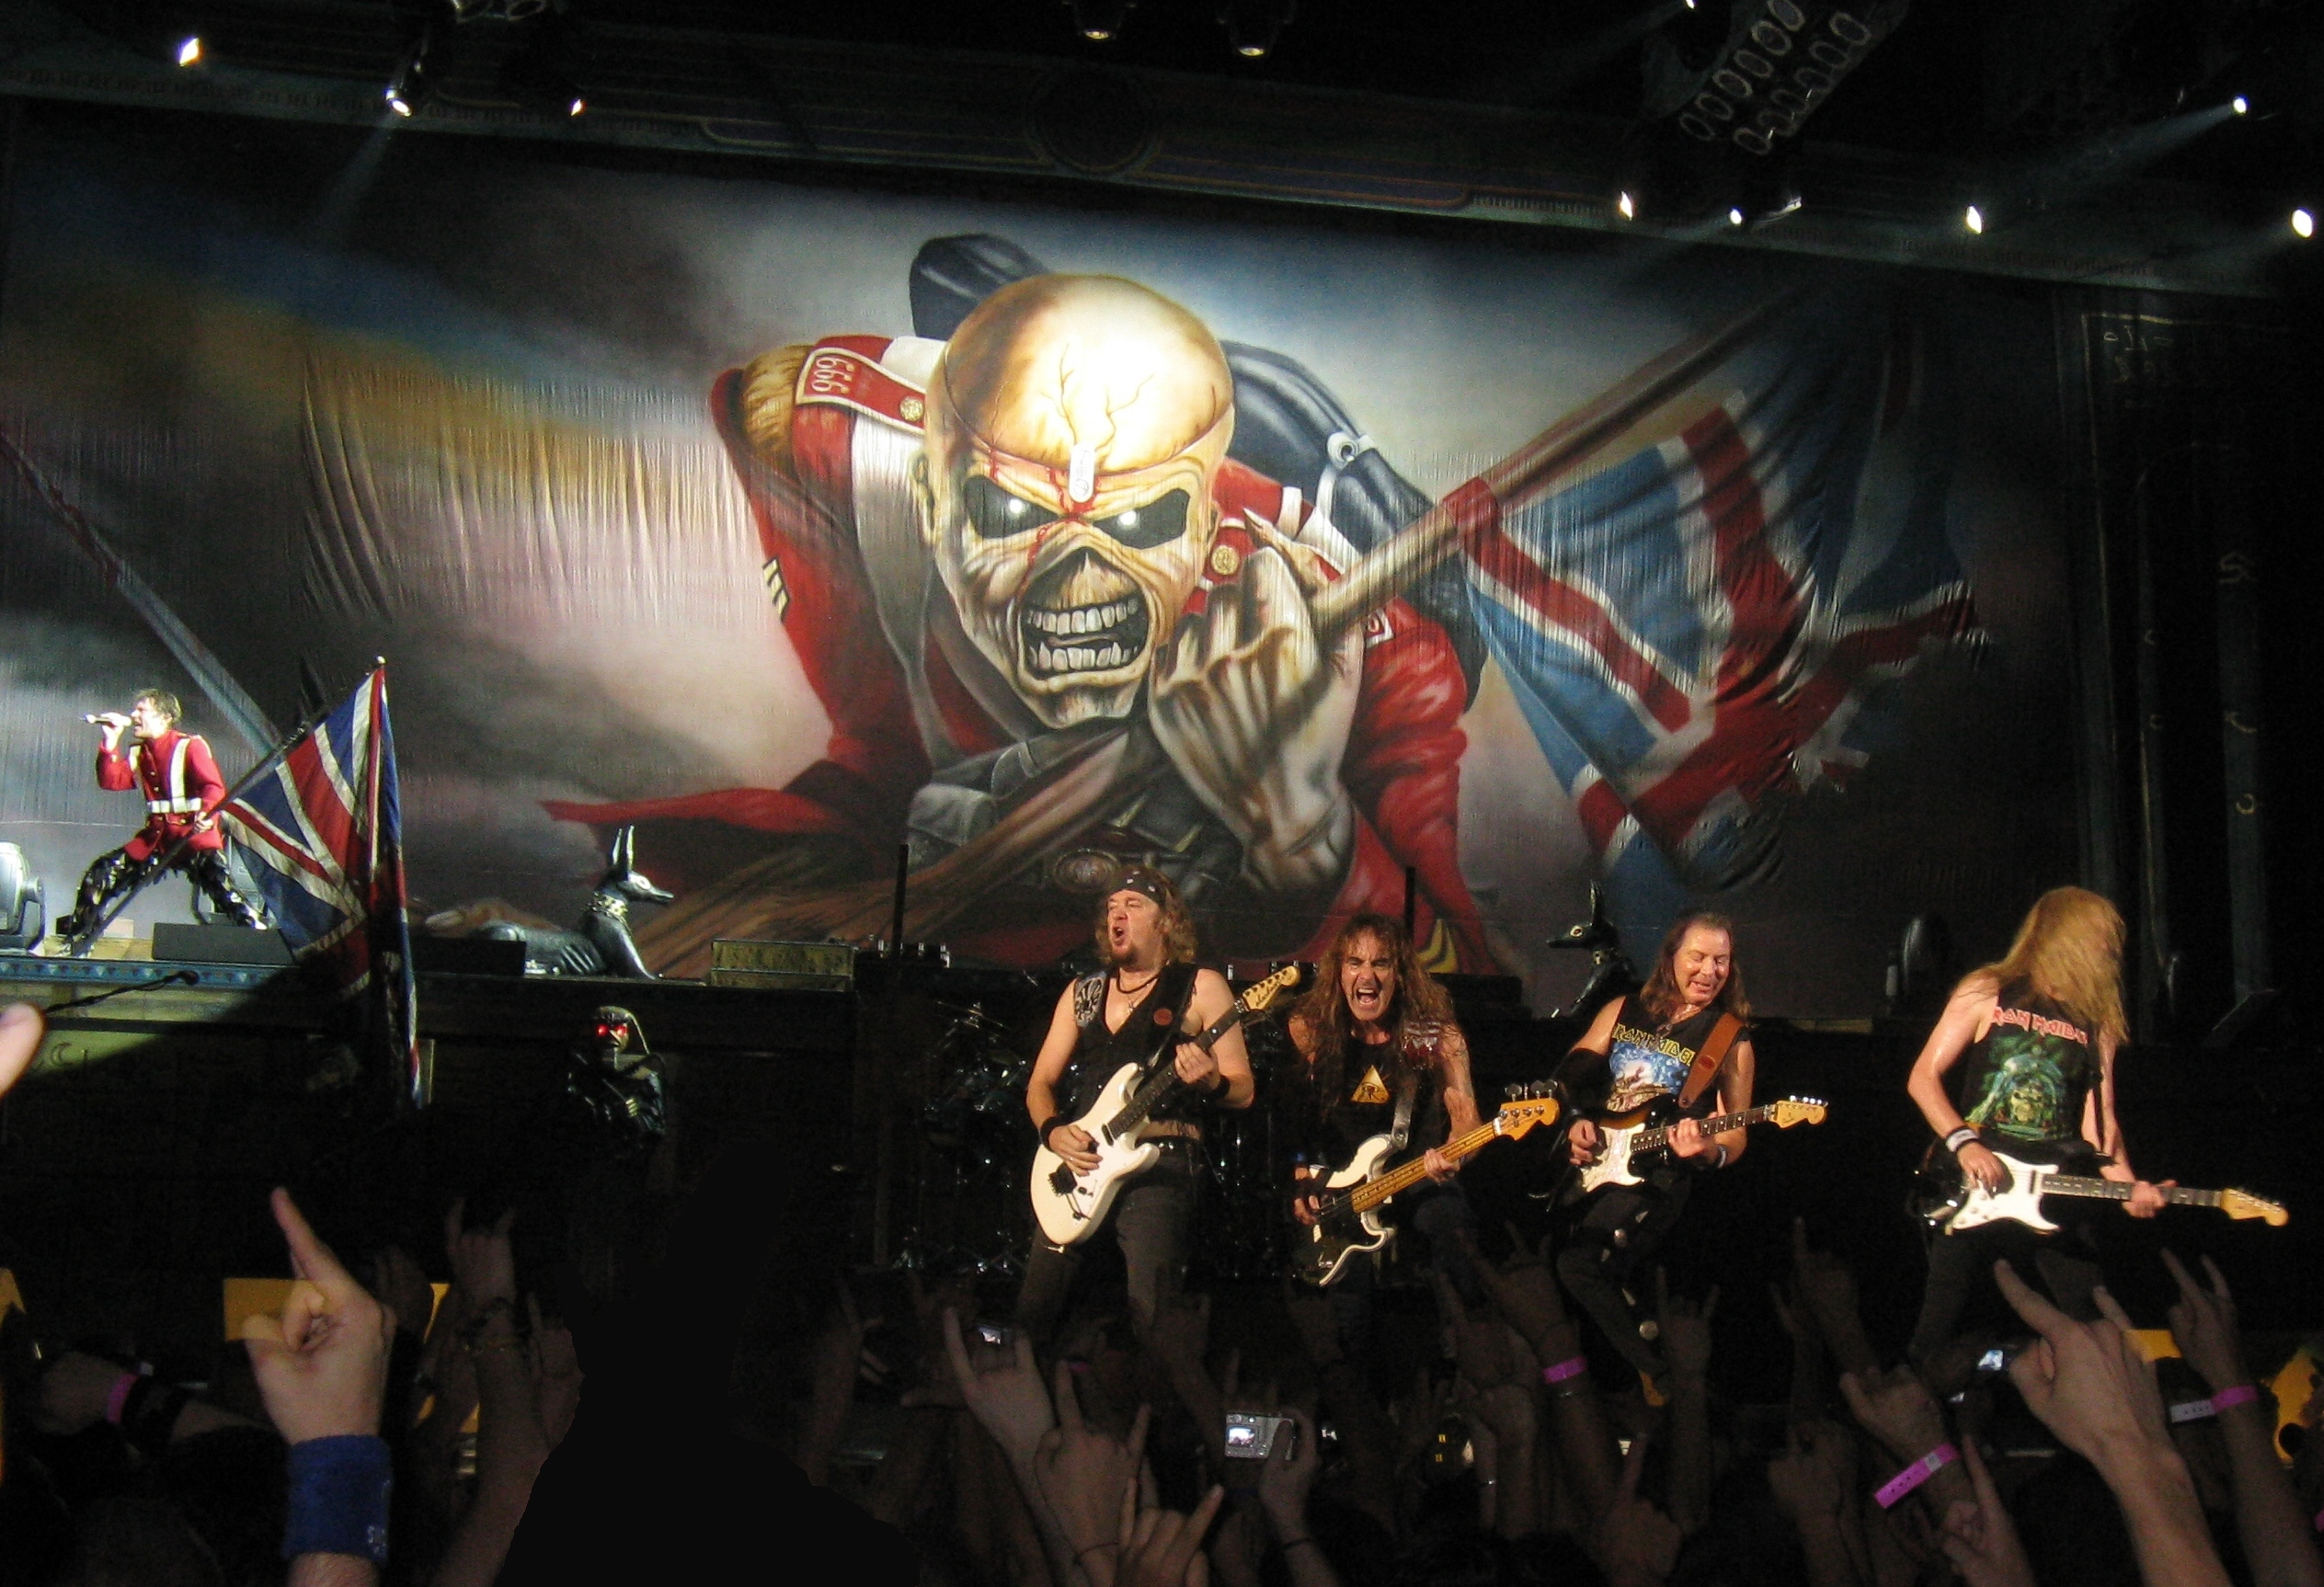 upload.wikimedia.org/wikipedia/commons/0/0d/Iron_Maiden_in_the_Palais_Omnisports_of_Paris-Bercy_%28France%29.jpg